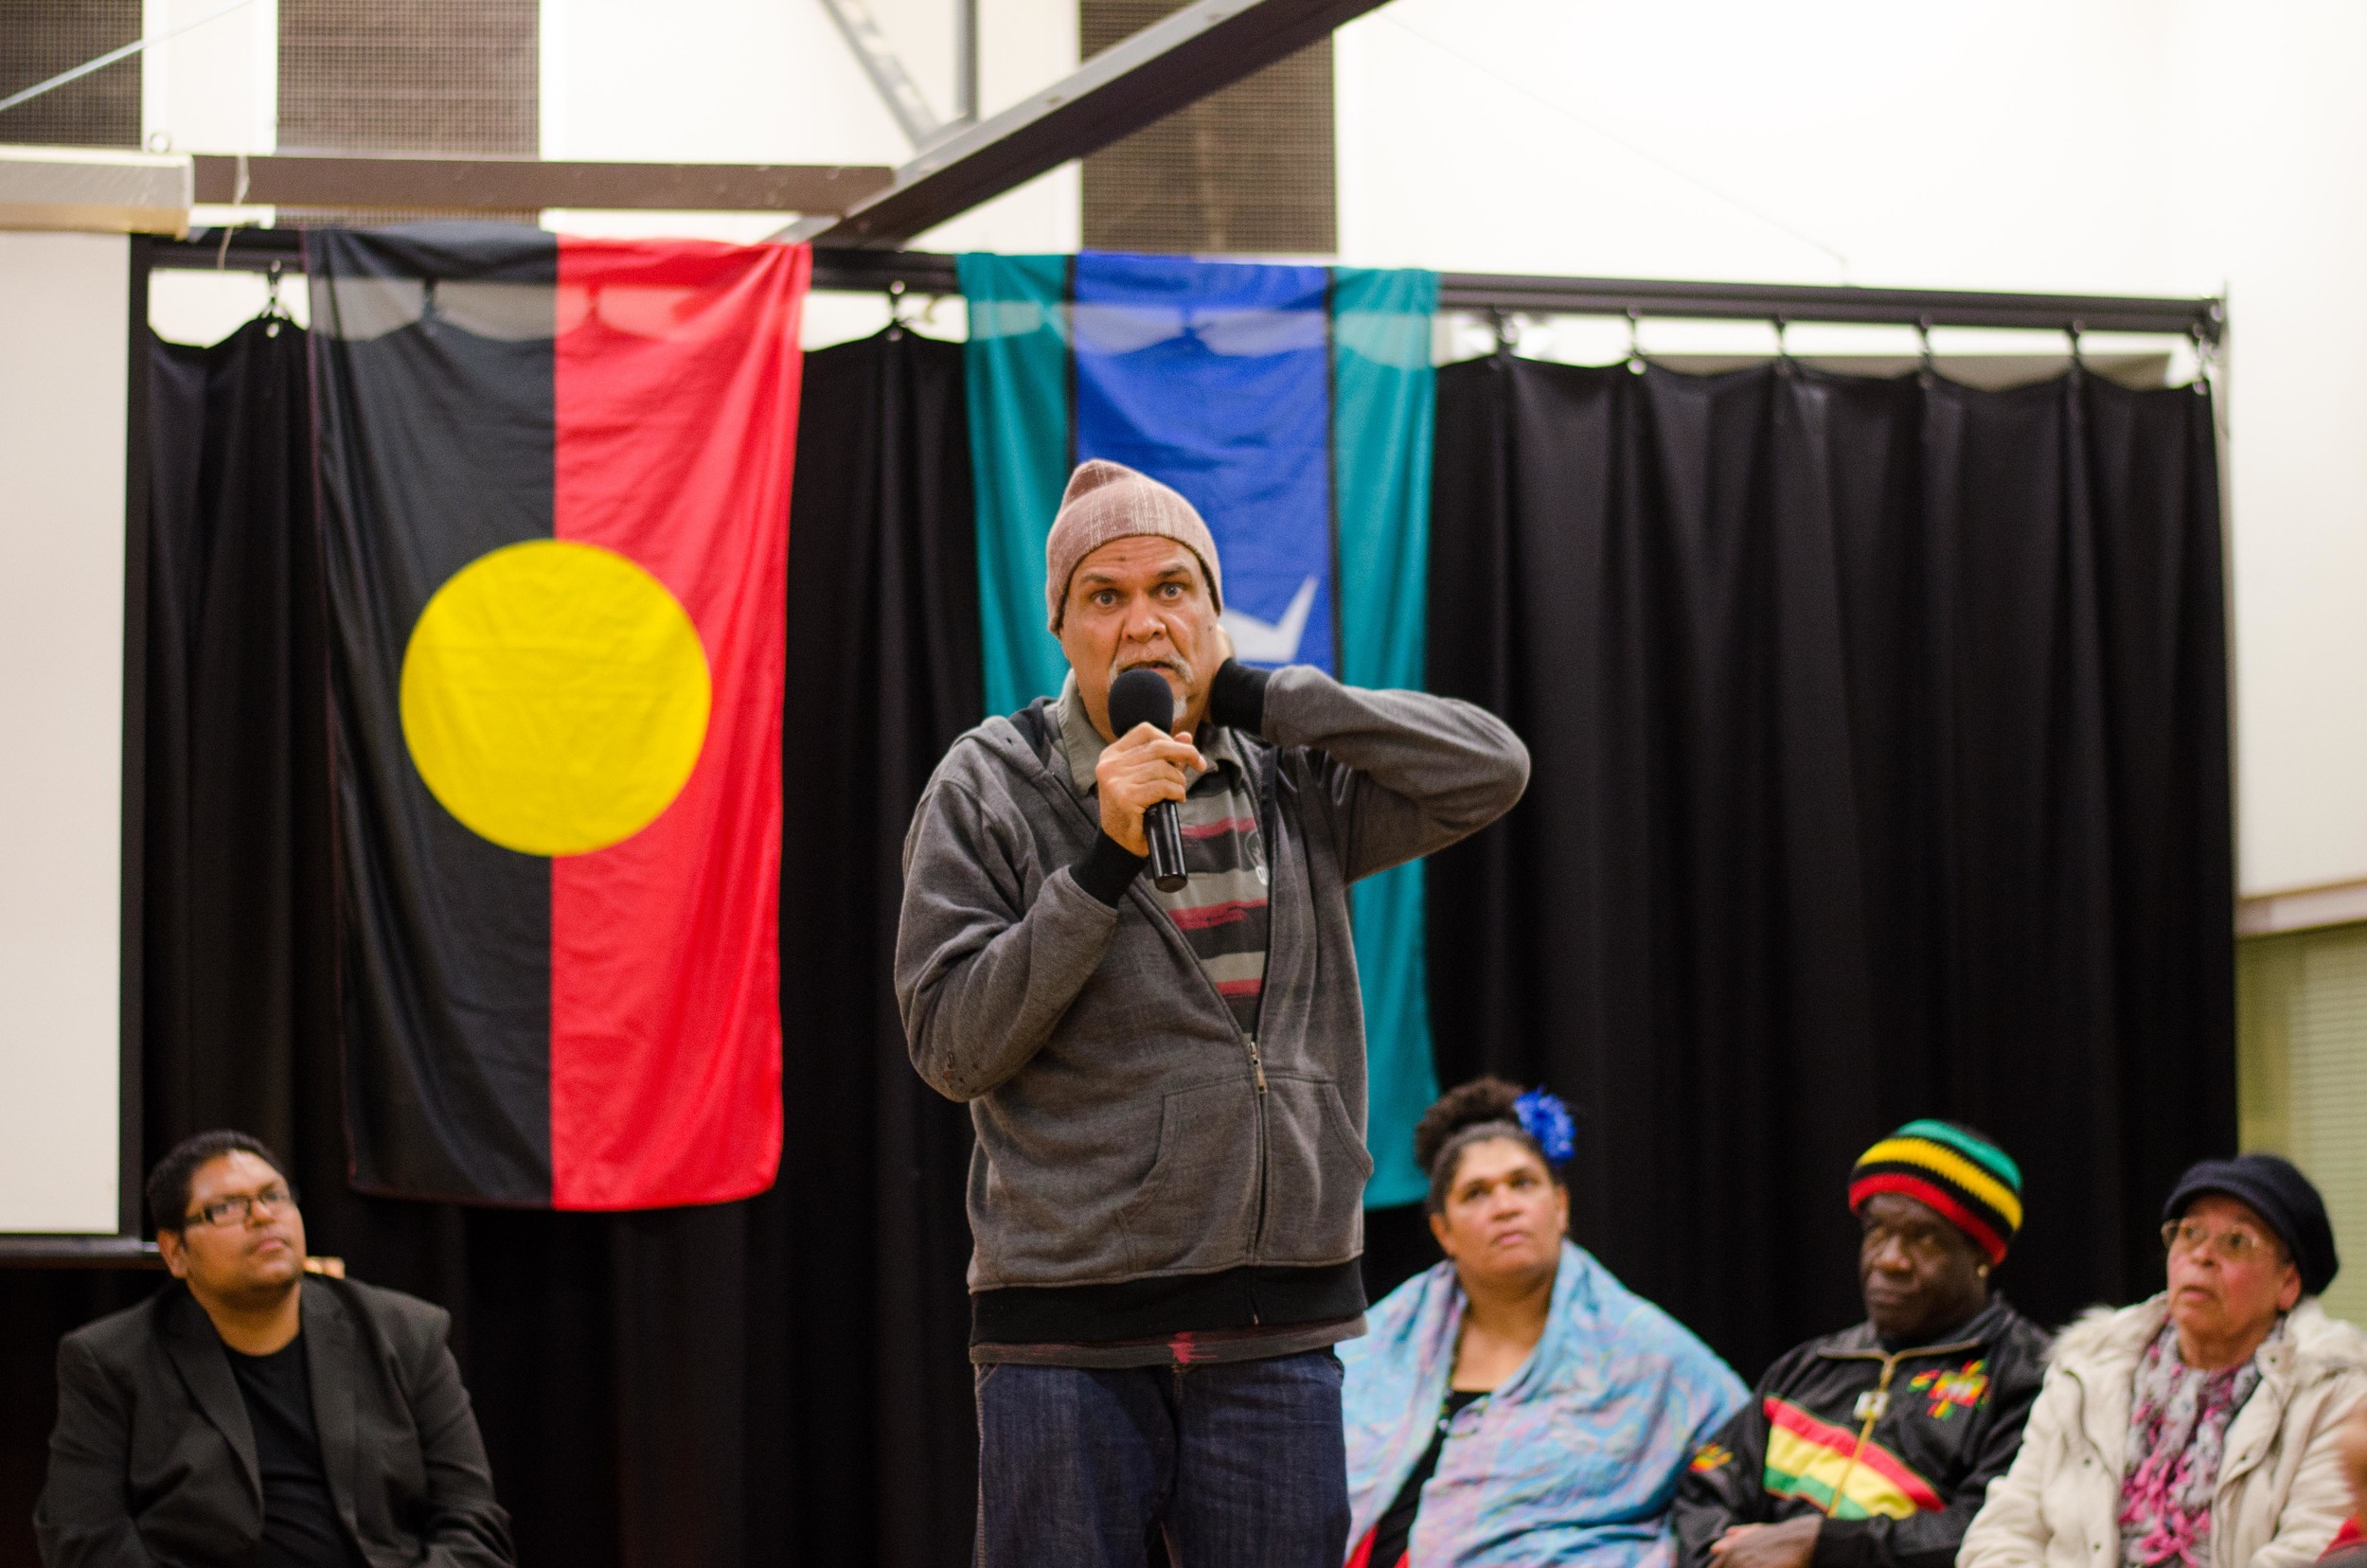 June 3rd Mabo Day at Redfern Community Centre: Wilo sharing his story